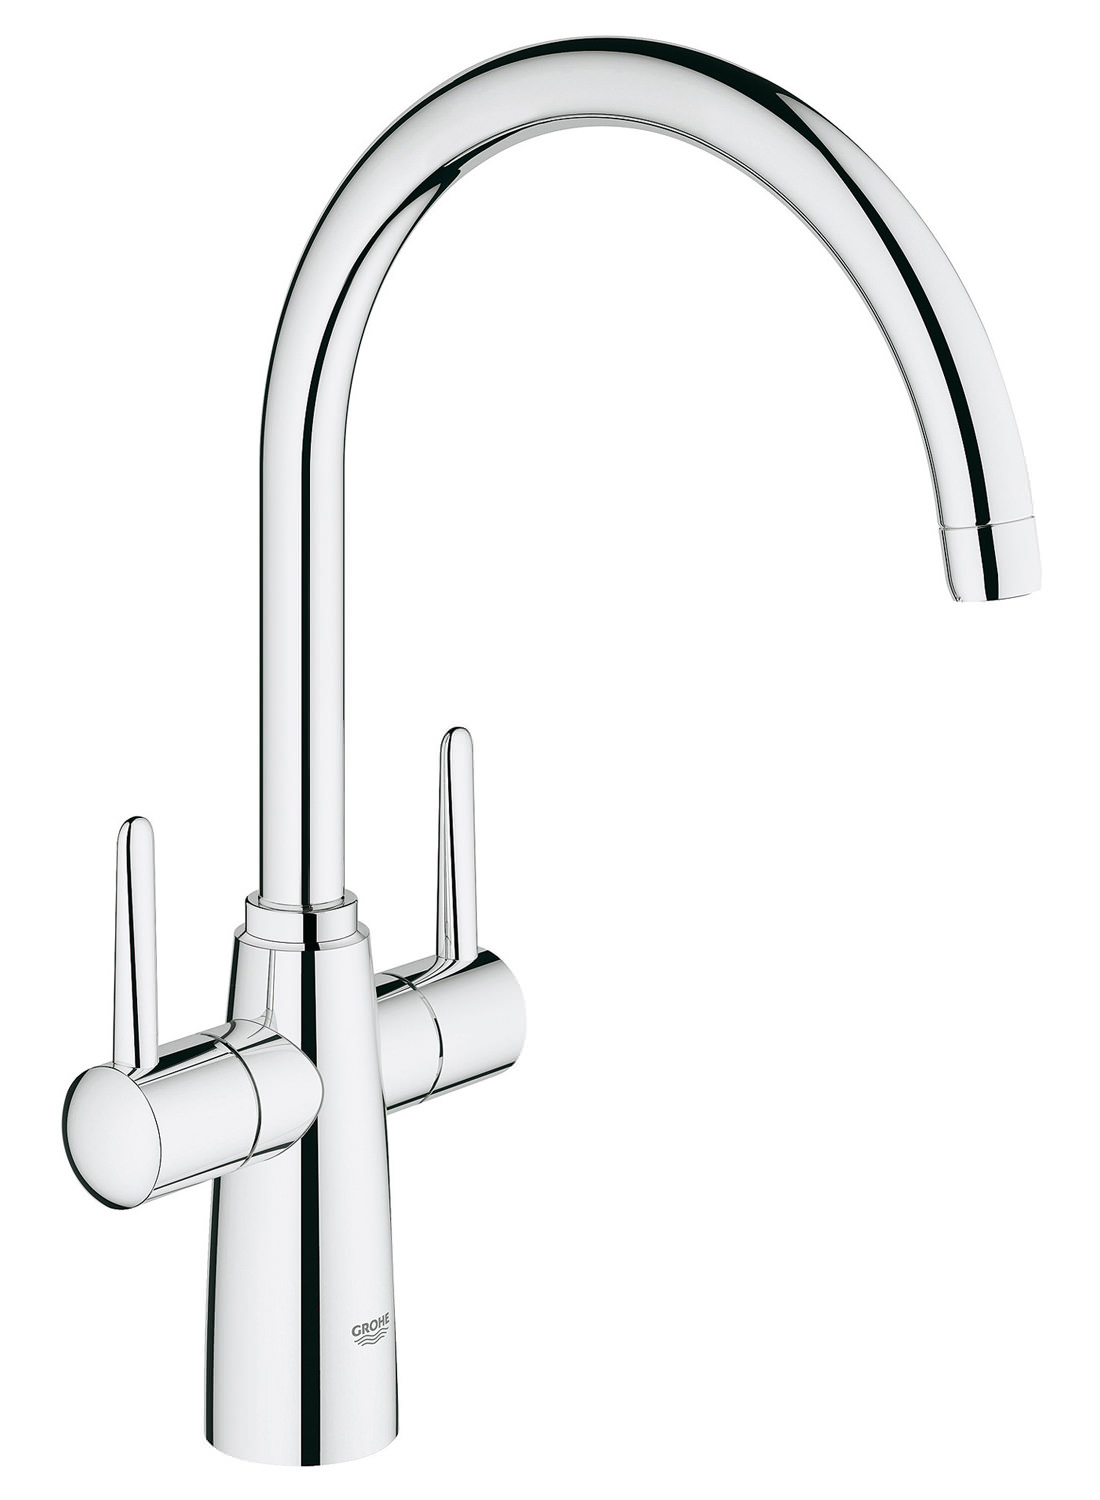 White Kitchen Mixer Tap grohe ambi contemporary 2 handle kitchen sink mixer tap with